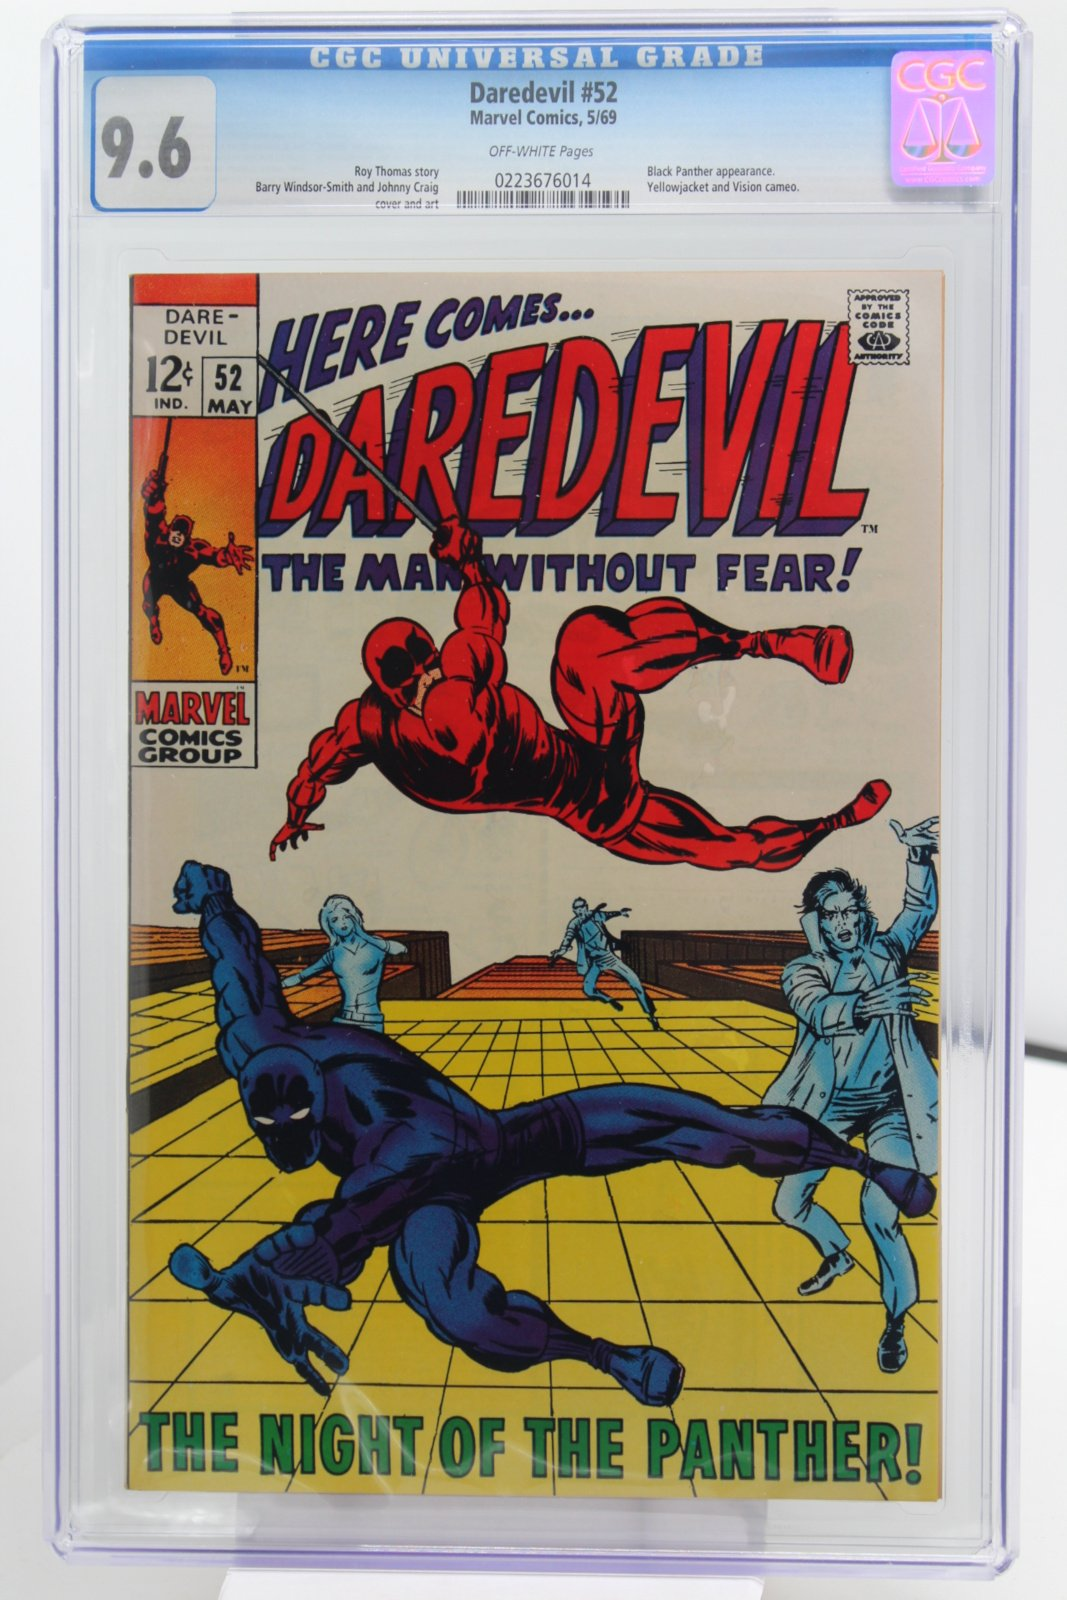 Daredevil #52 - International Comic Exchange